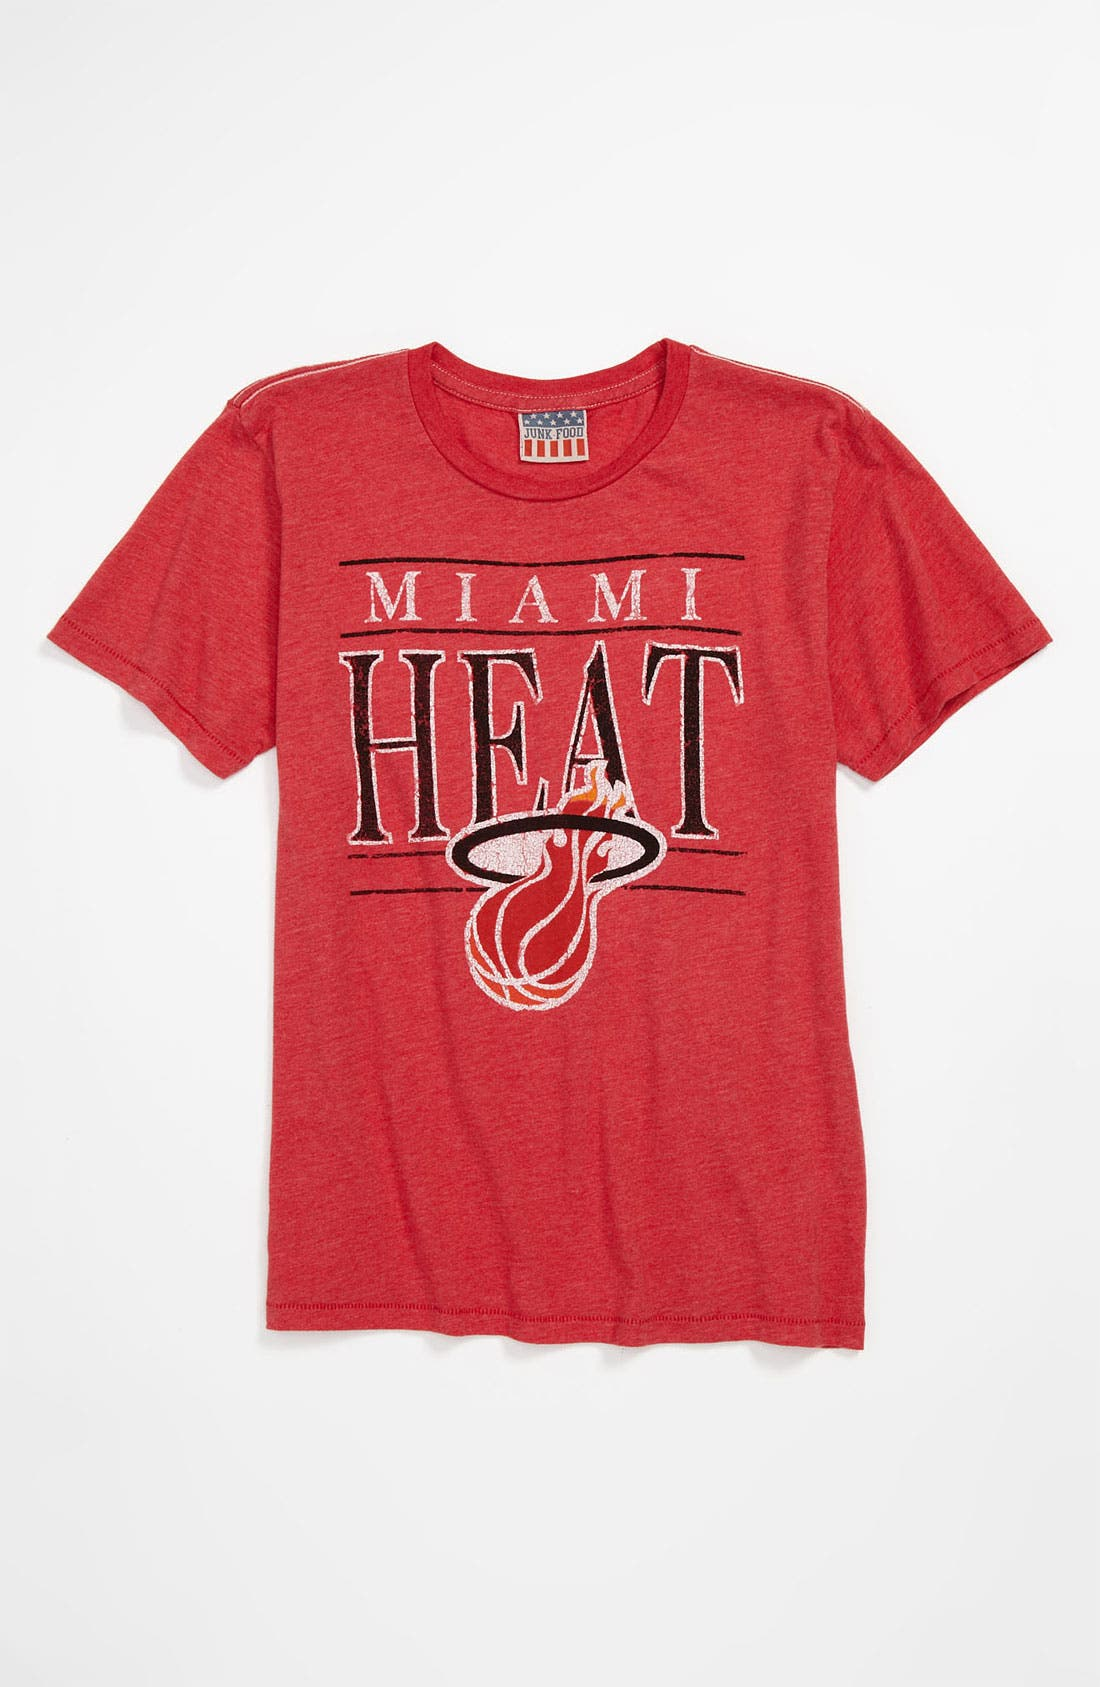 Alternate Image 1 Selected - Junk Food 'Miami Heat' T-Shirt (Little Boys & Big Boys)